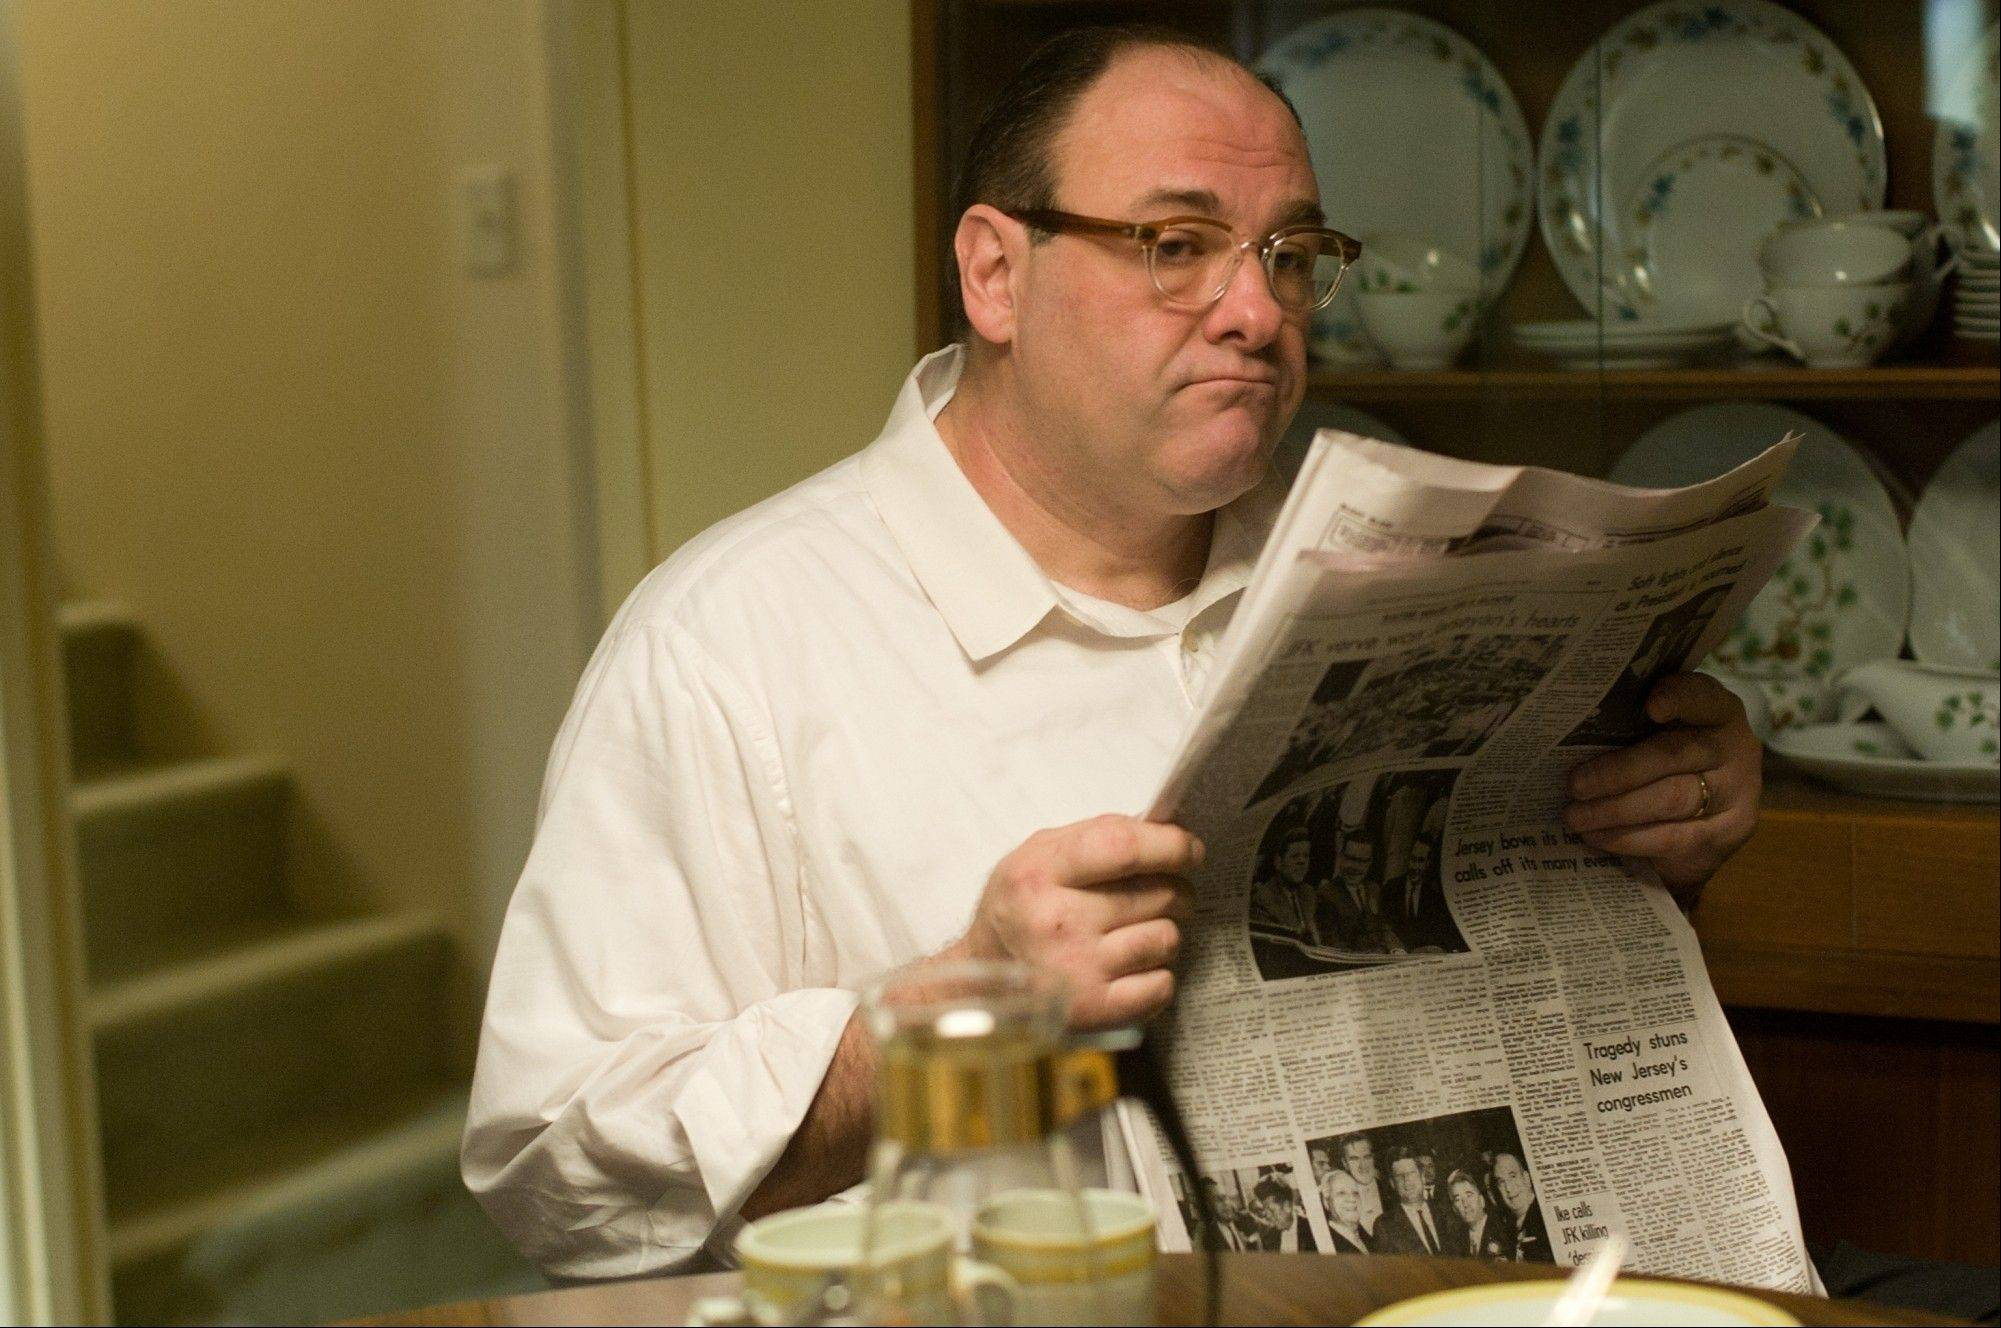 In bite-sized roles, Gandolfini ubiquitous again